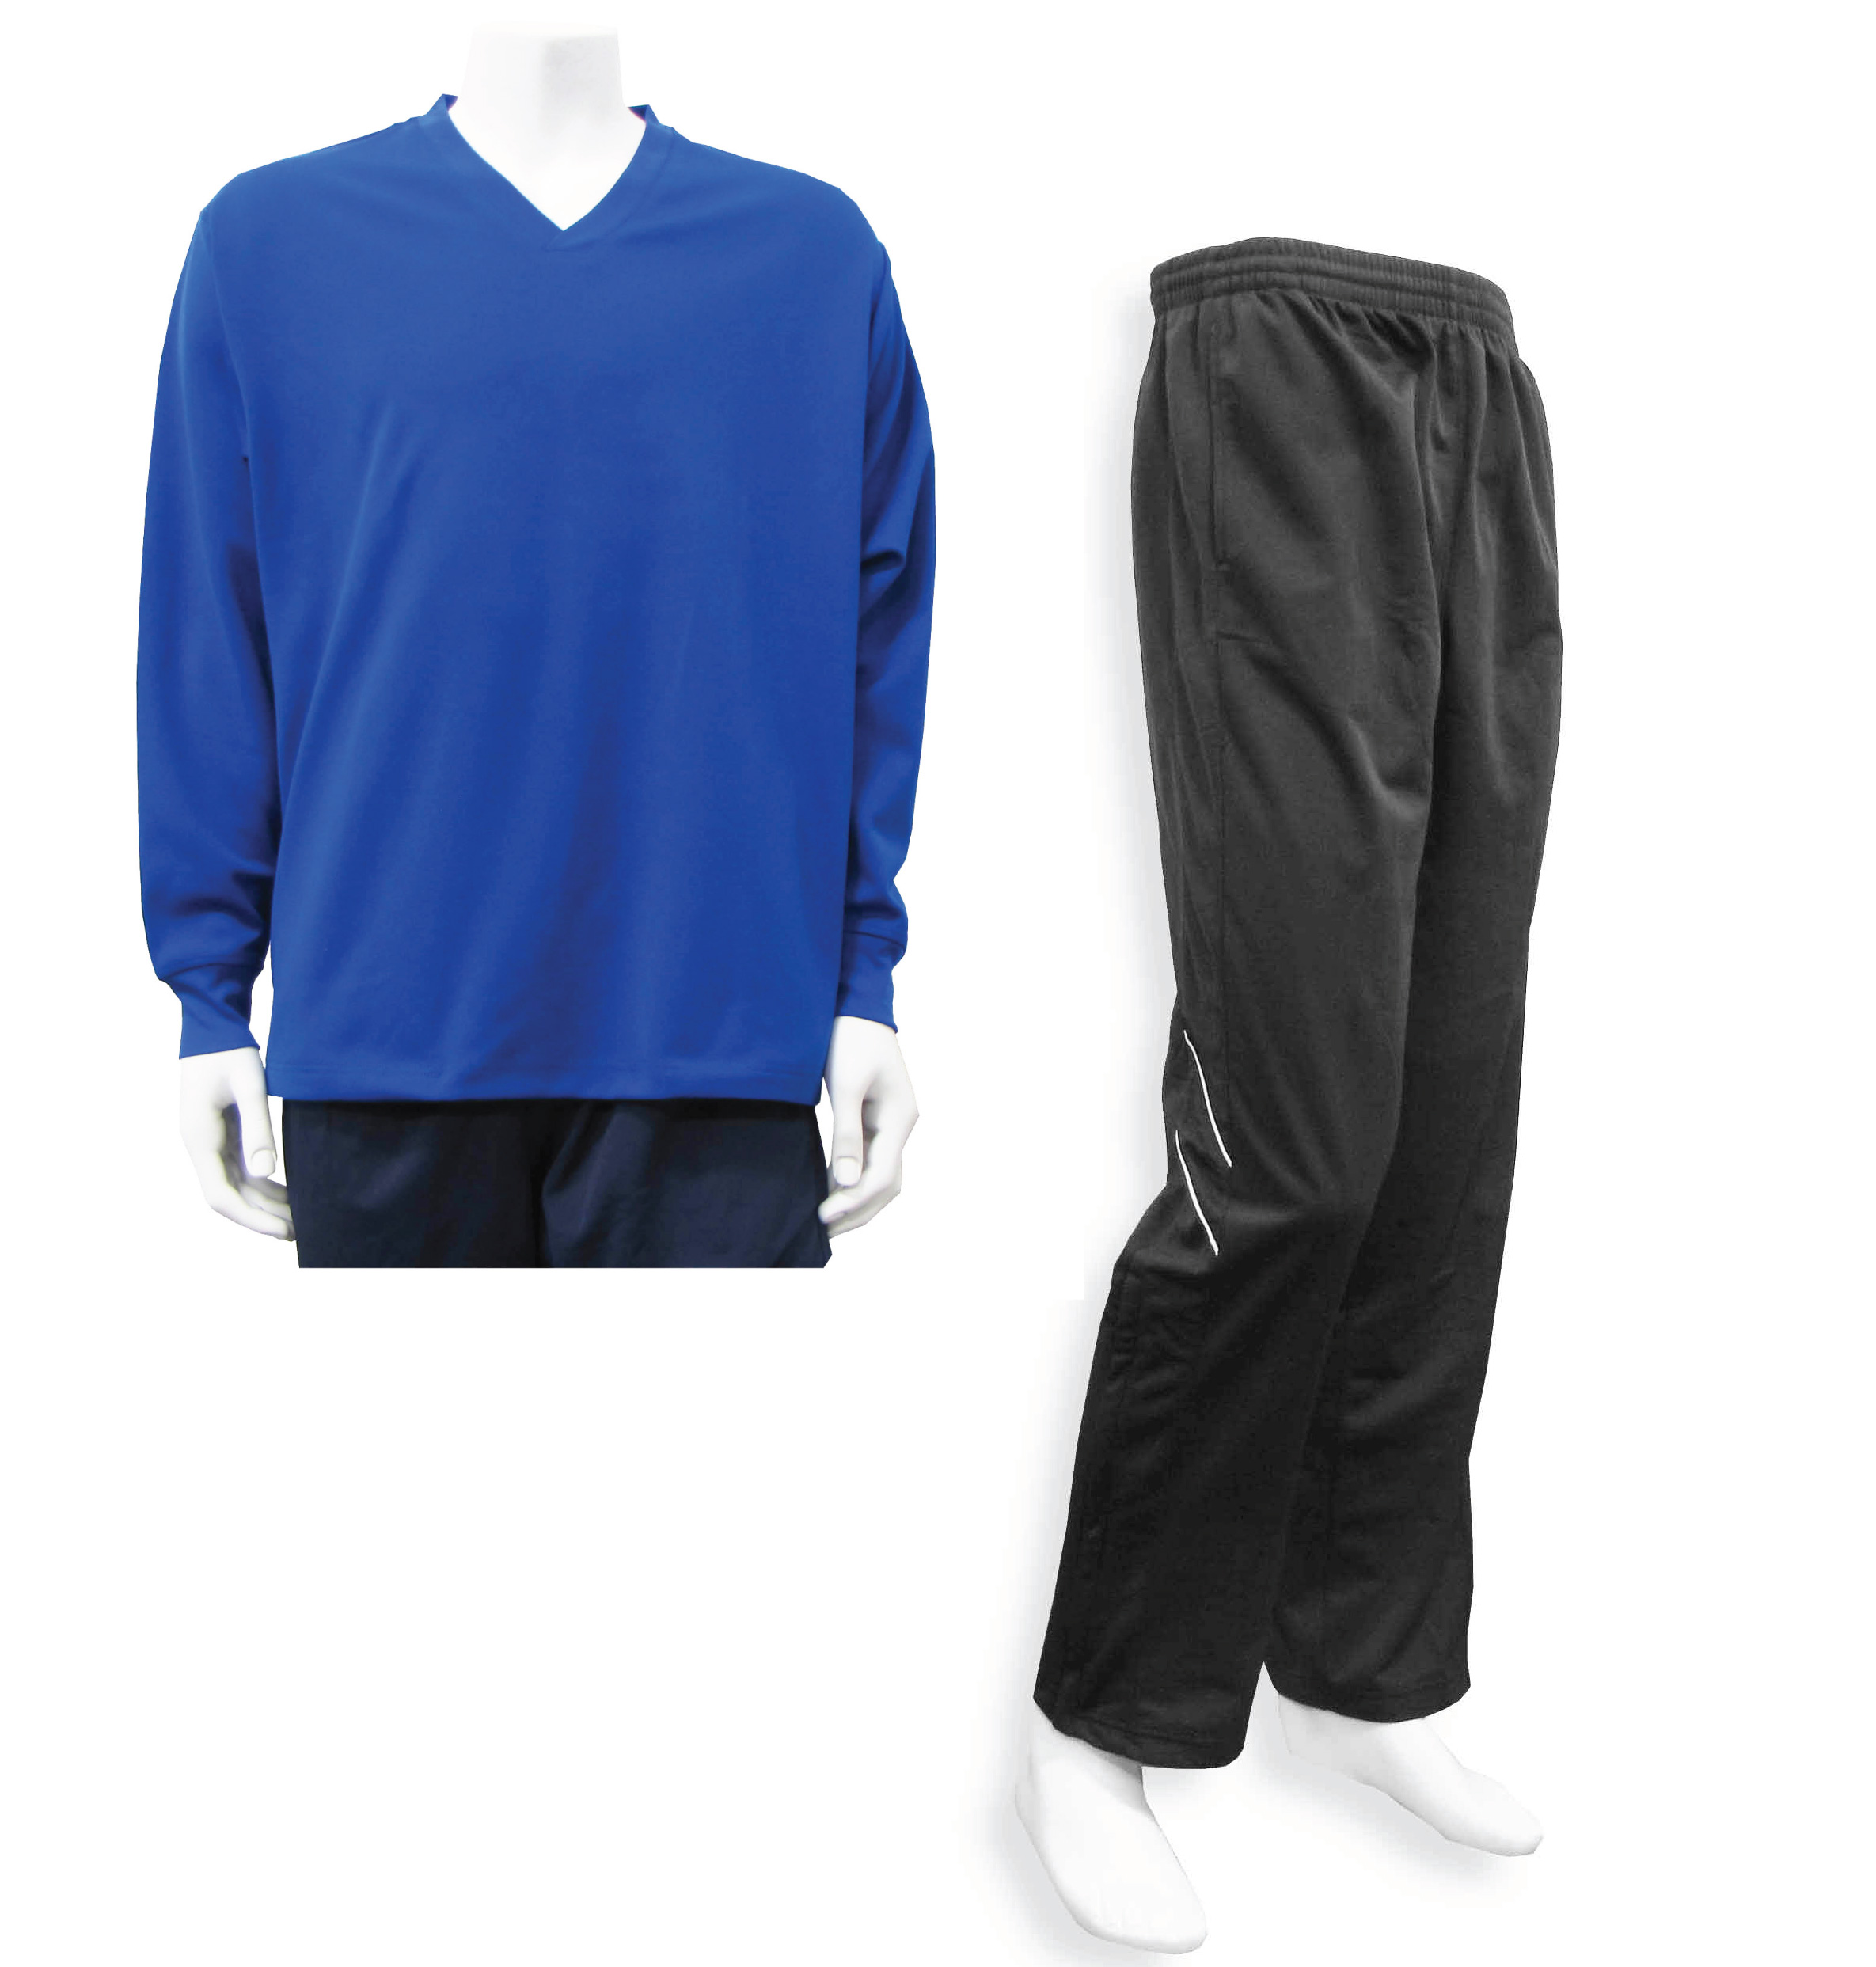 Men's Casual Track Suit by Code Four Athletics in royal/black